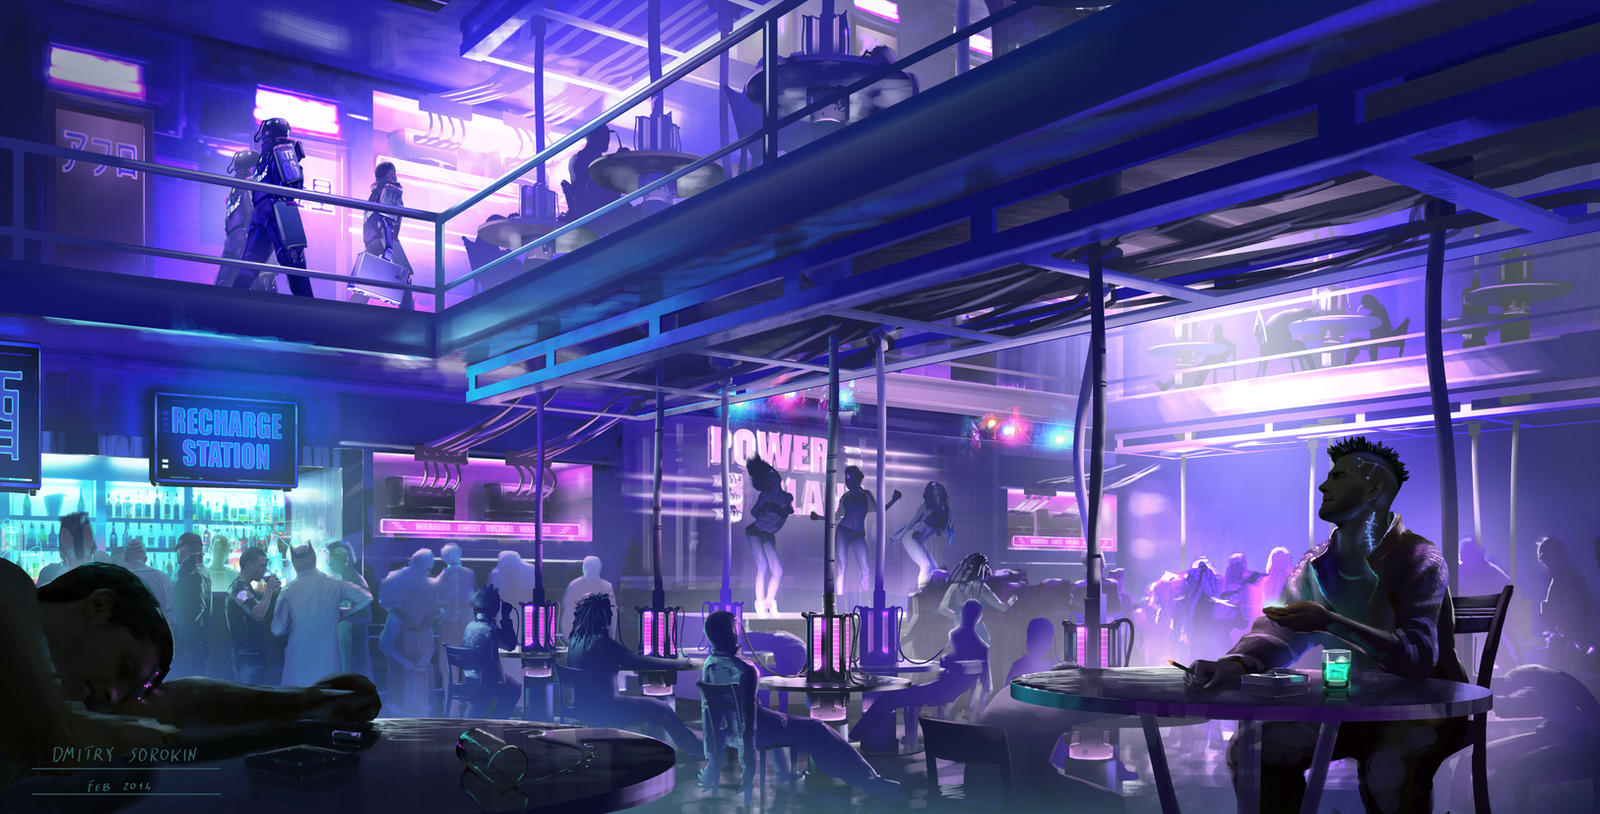 The Tipsy Hue Nightclub Cyberpunk__night_club_by_dsorokin755-d75lf02